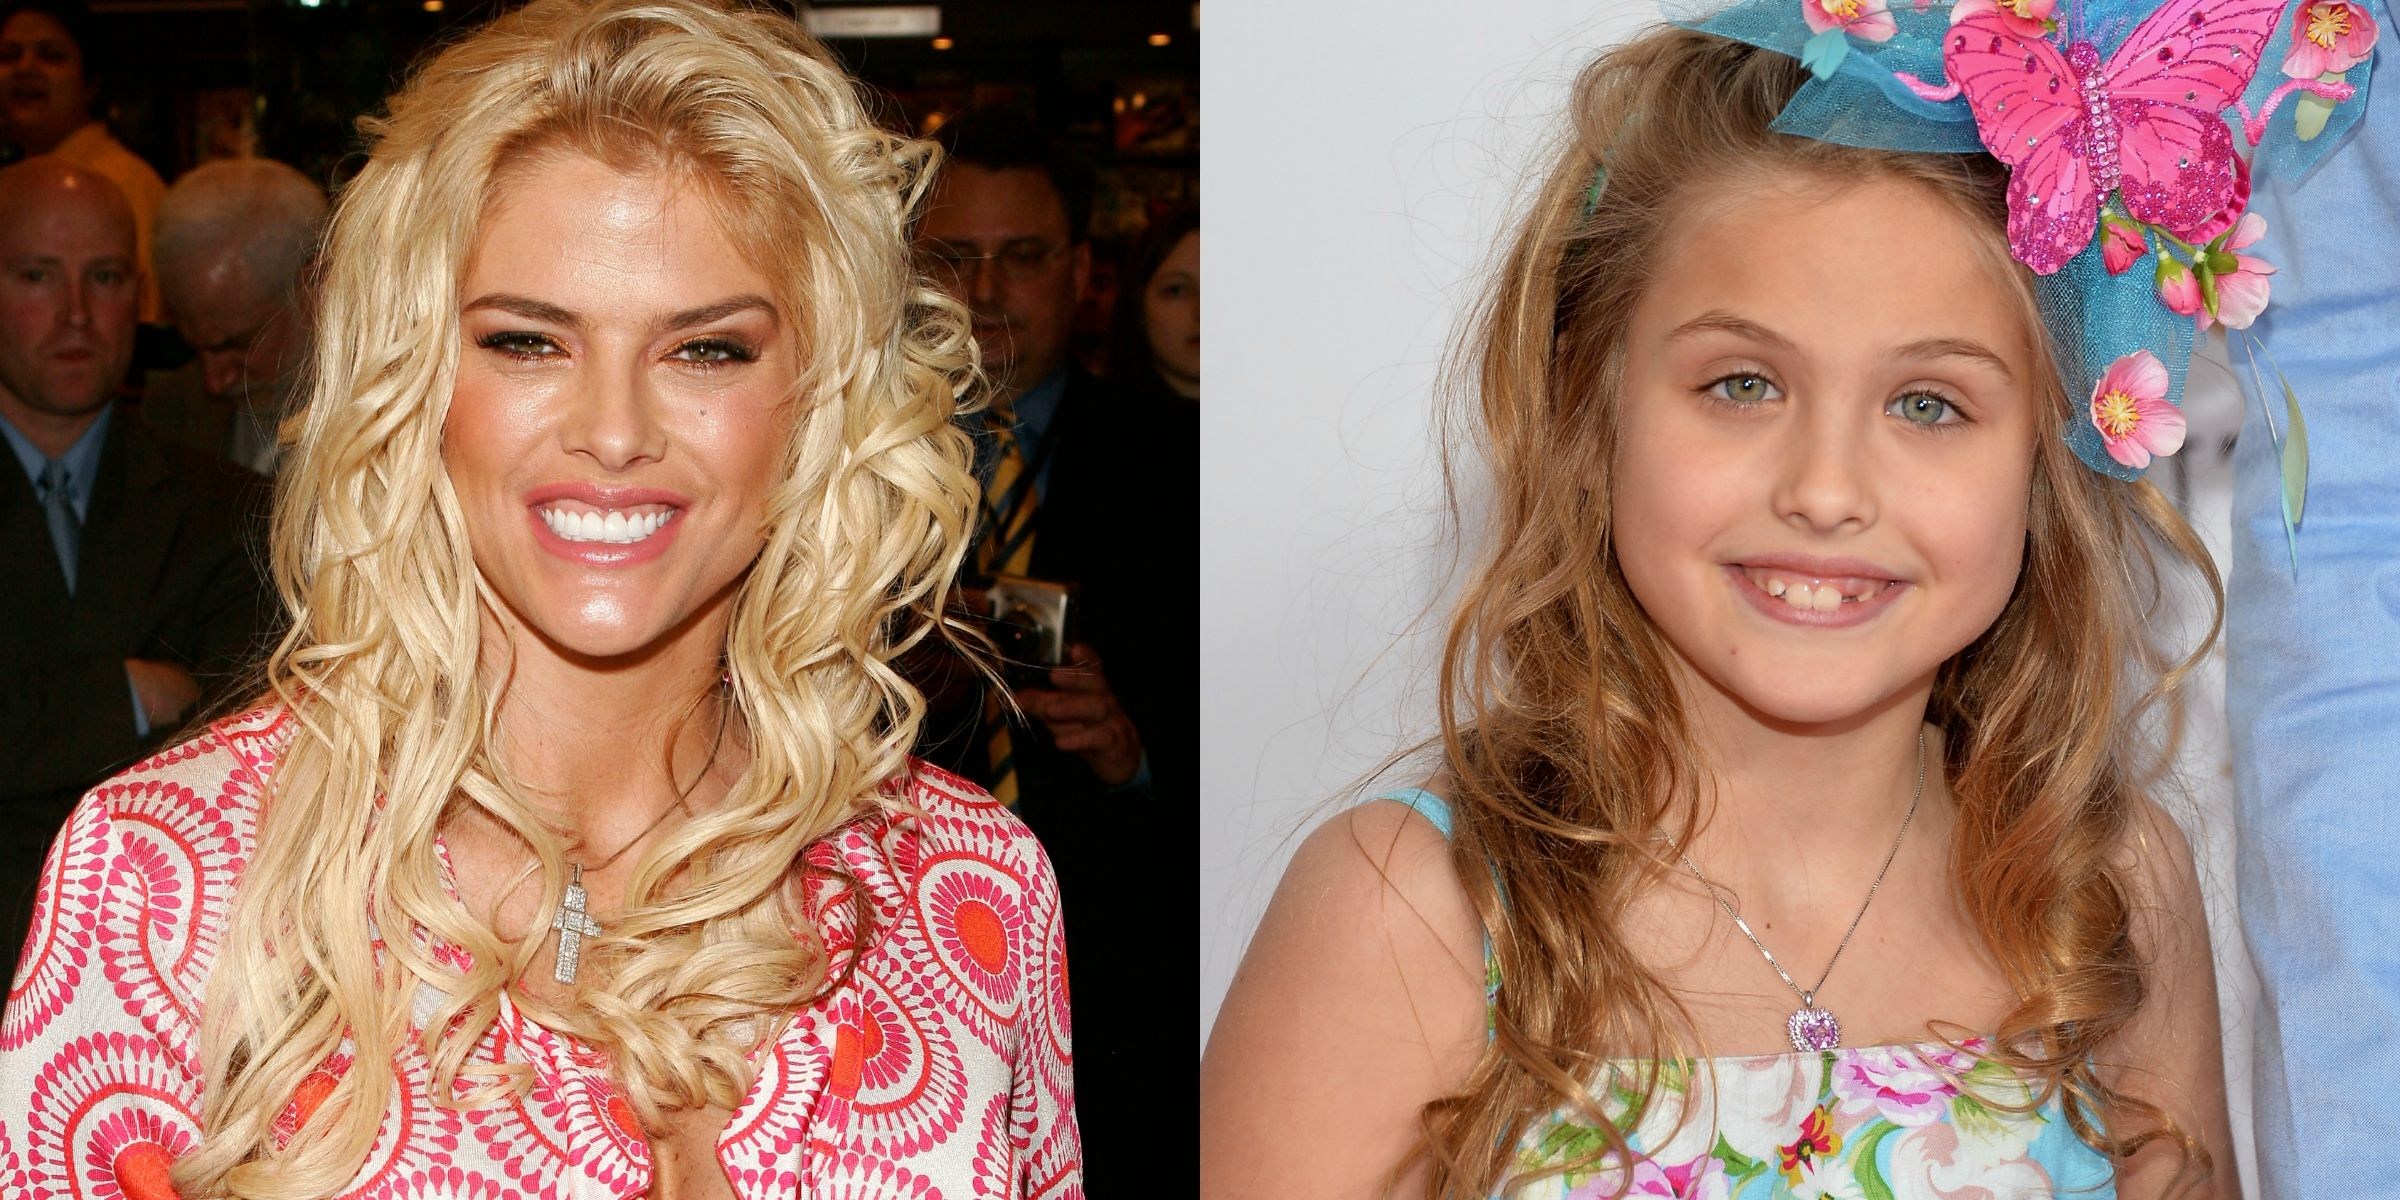 Anna Nicole Smith's Daughter Dannielynn Birkhead Looks Just Like Her at 14 Years Old